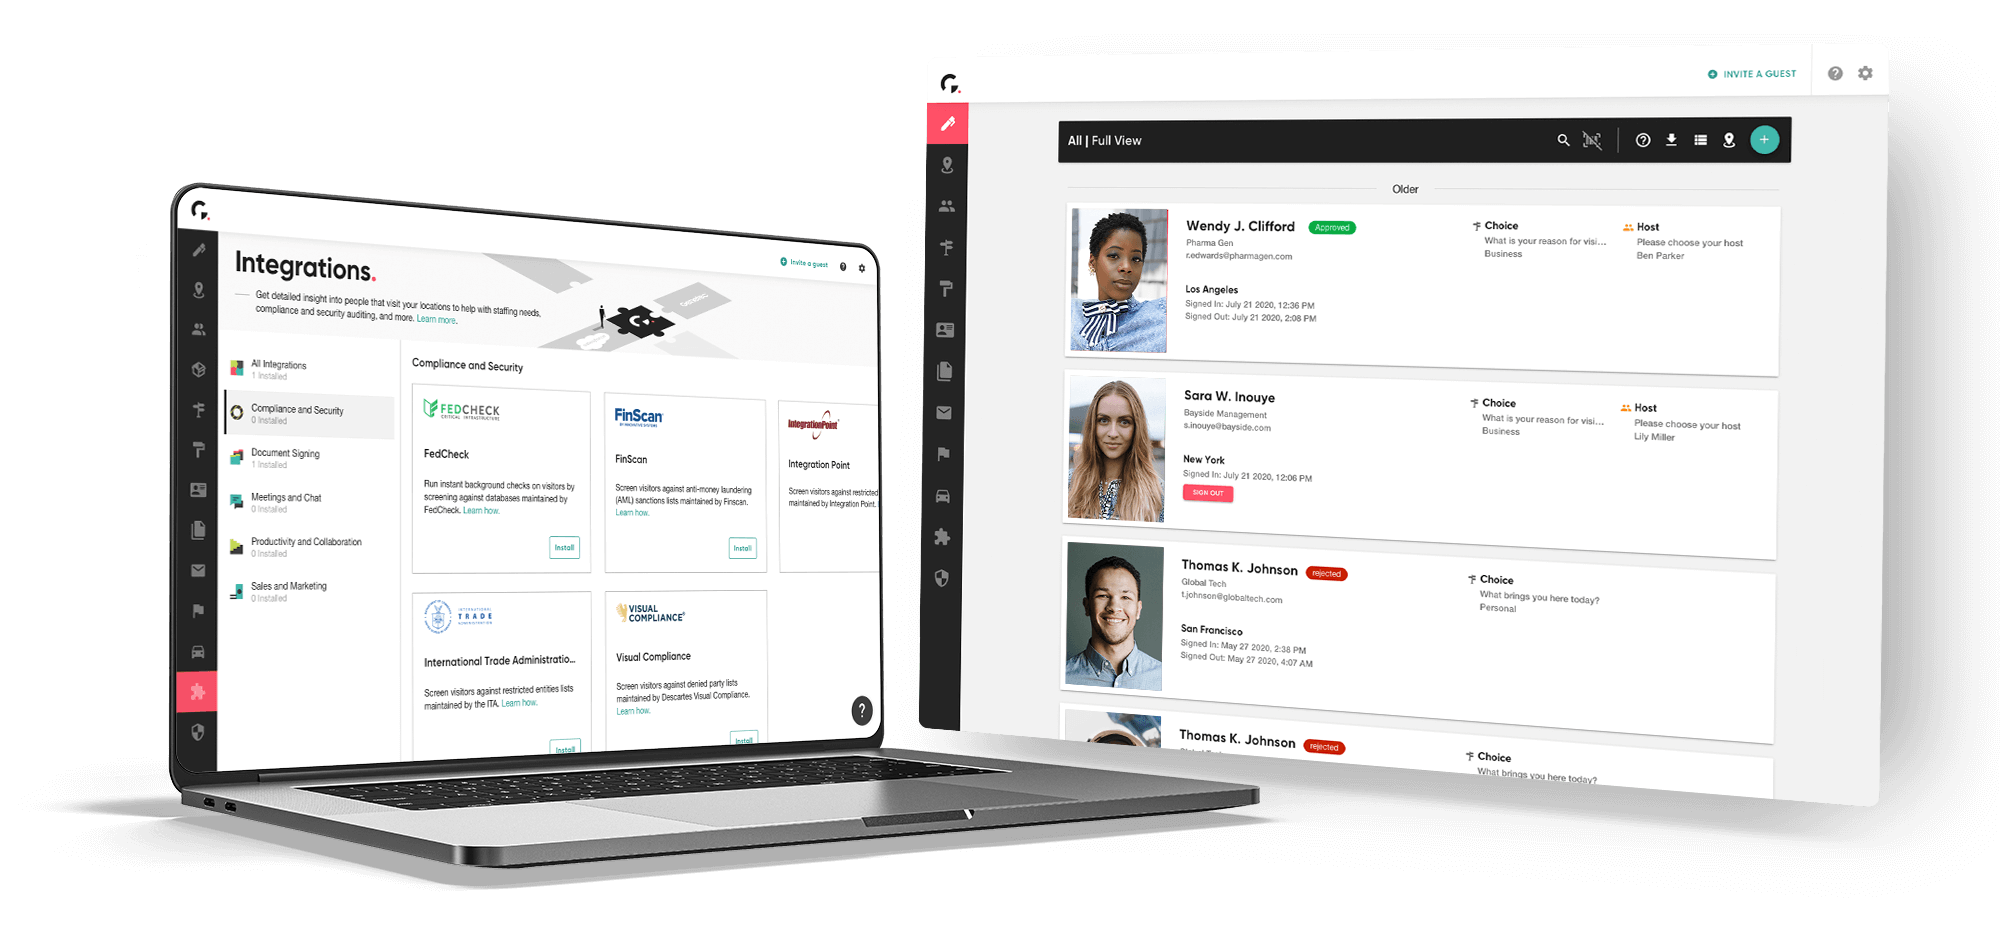 Integrations and Guest book UI